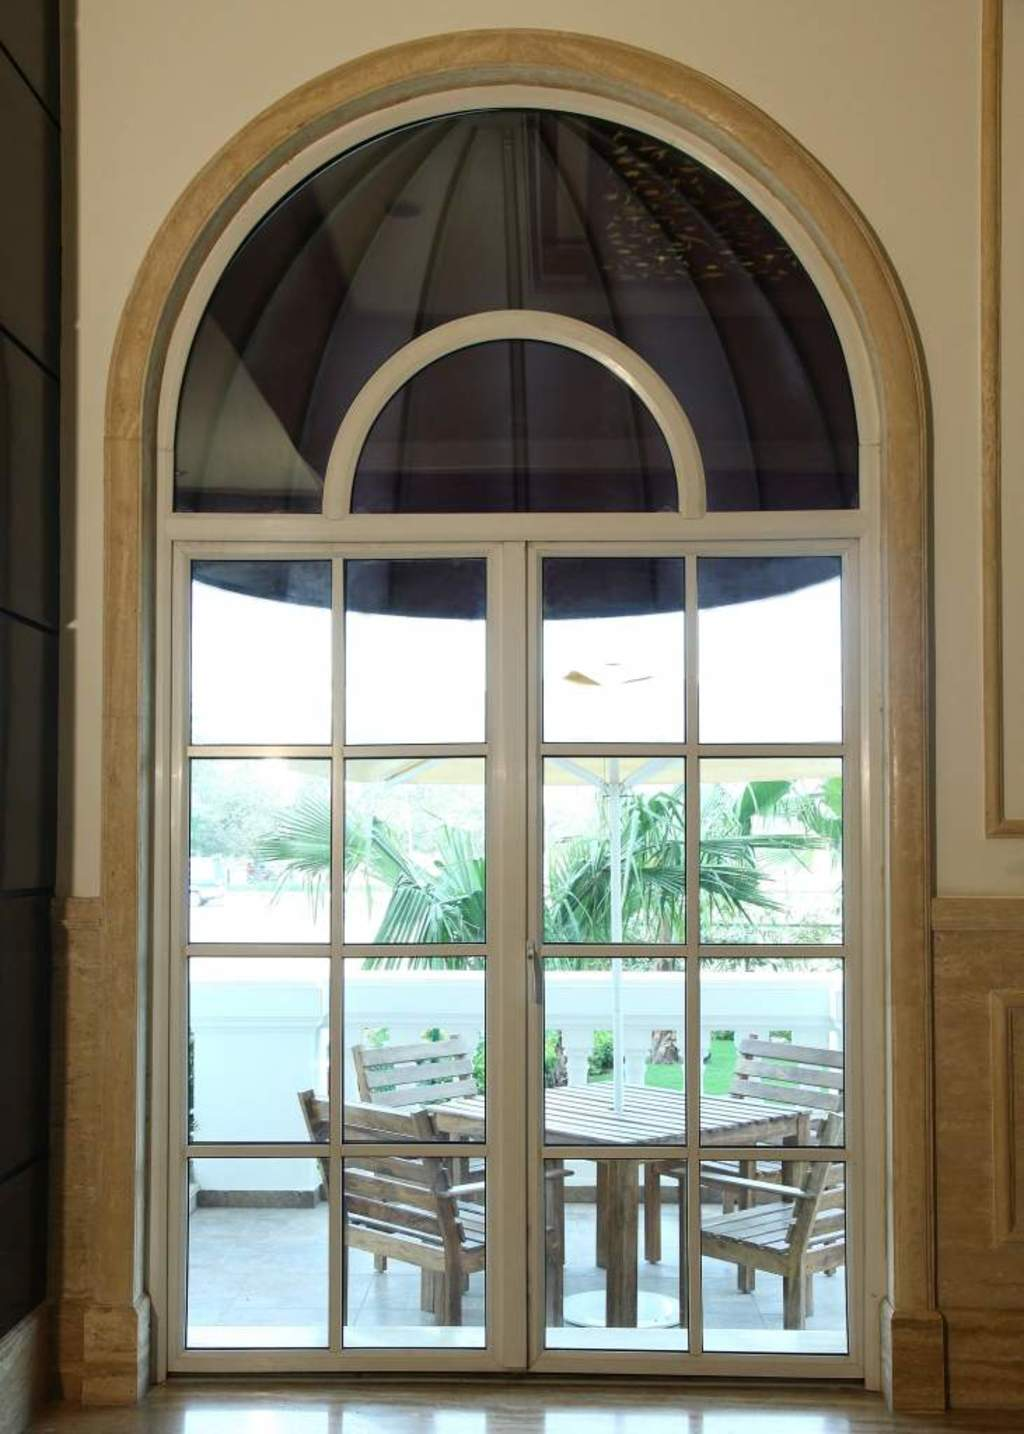 Arched Grill Designs